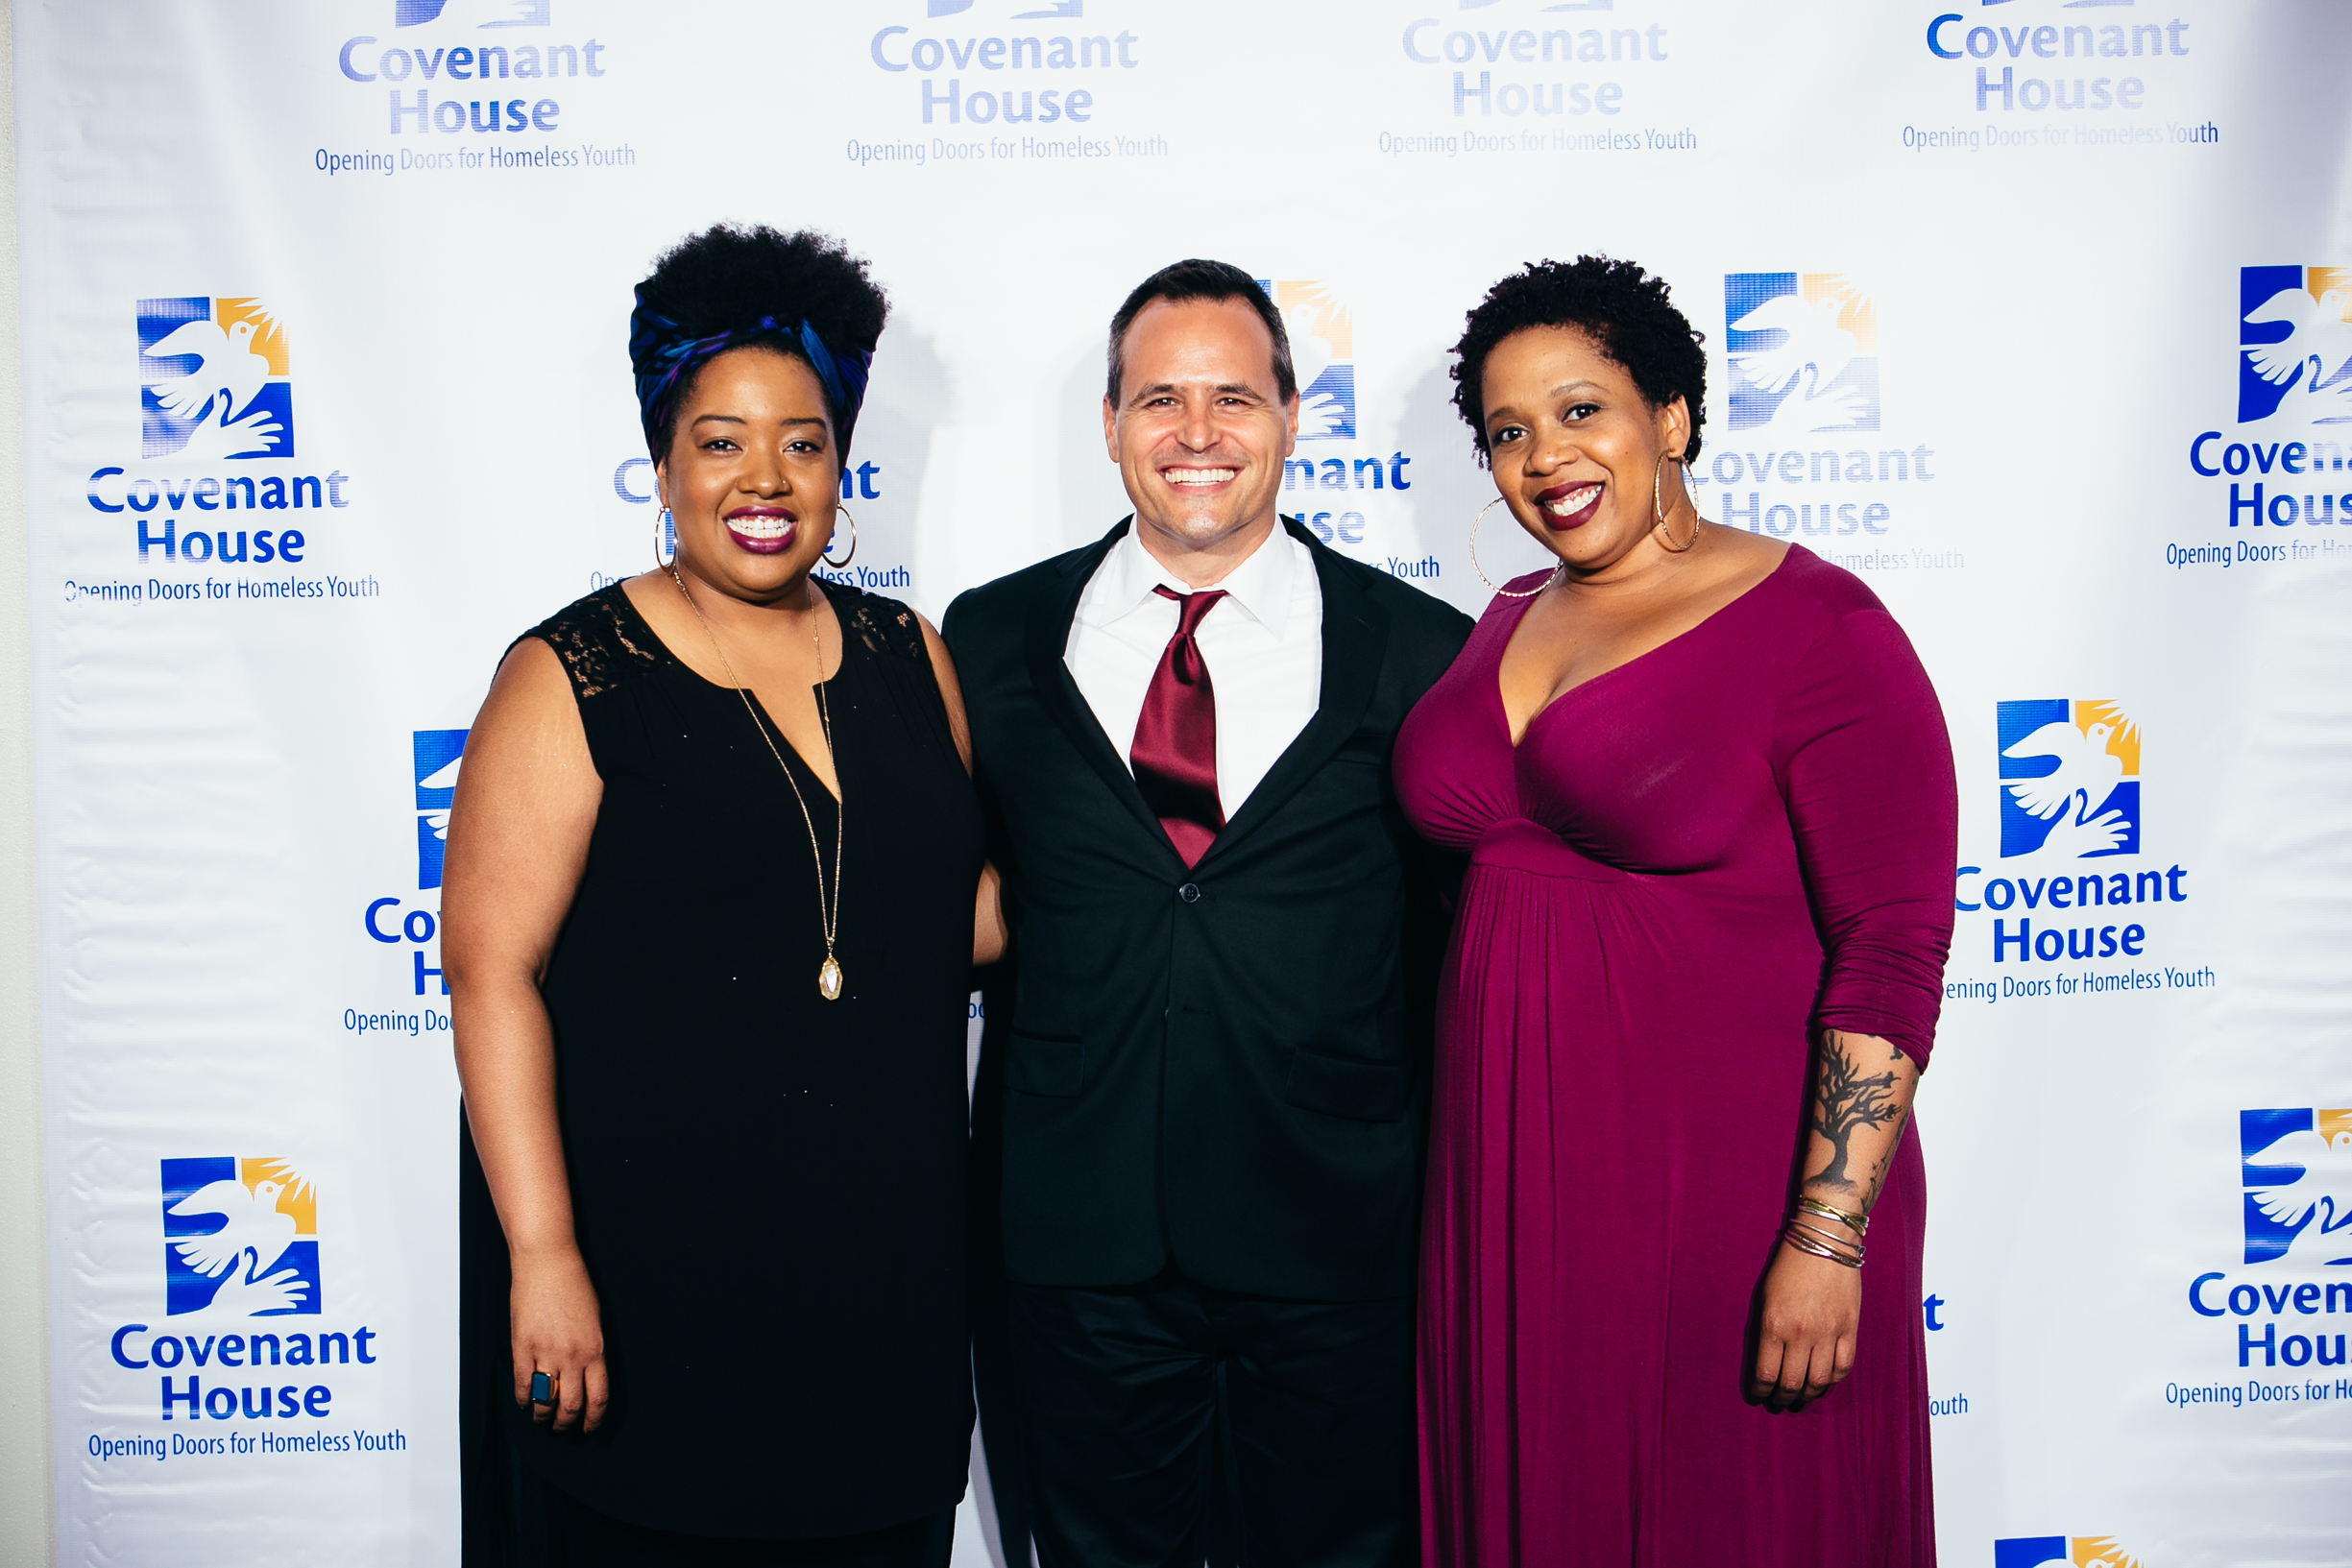 Program songwriters: Celisse Henderson, Chris Dilley, Crystal Monee Hall  Photography by: Othello Banaci